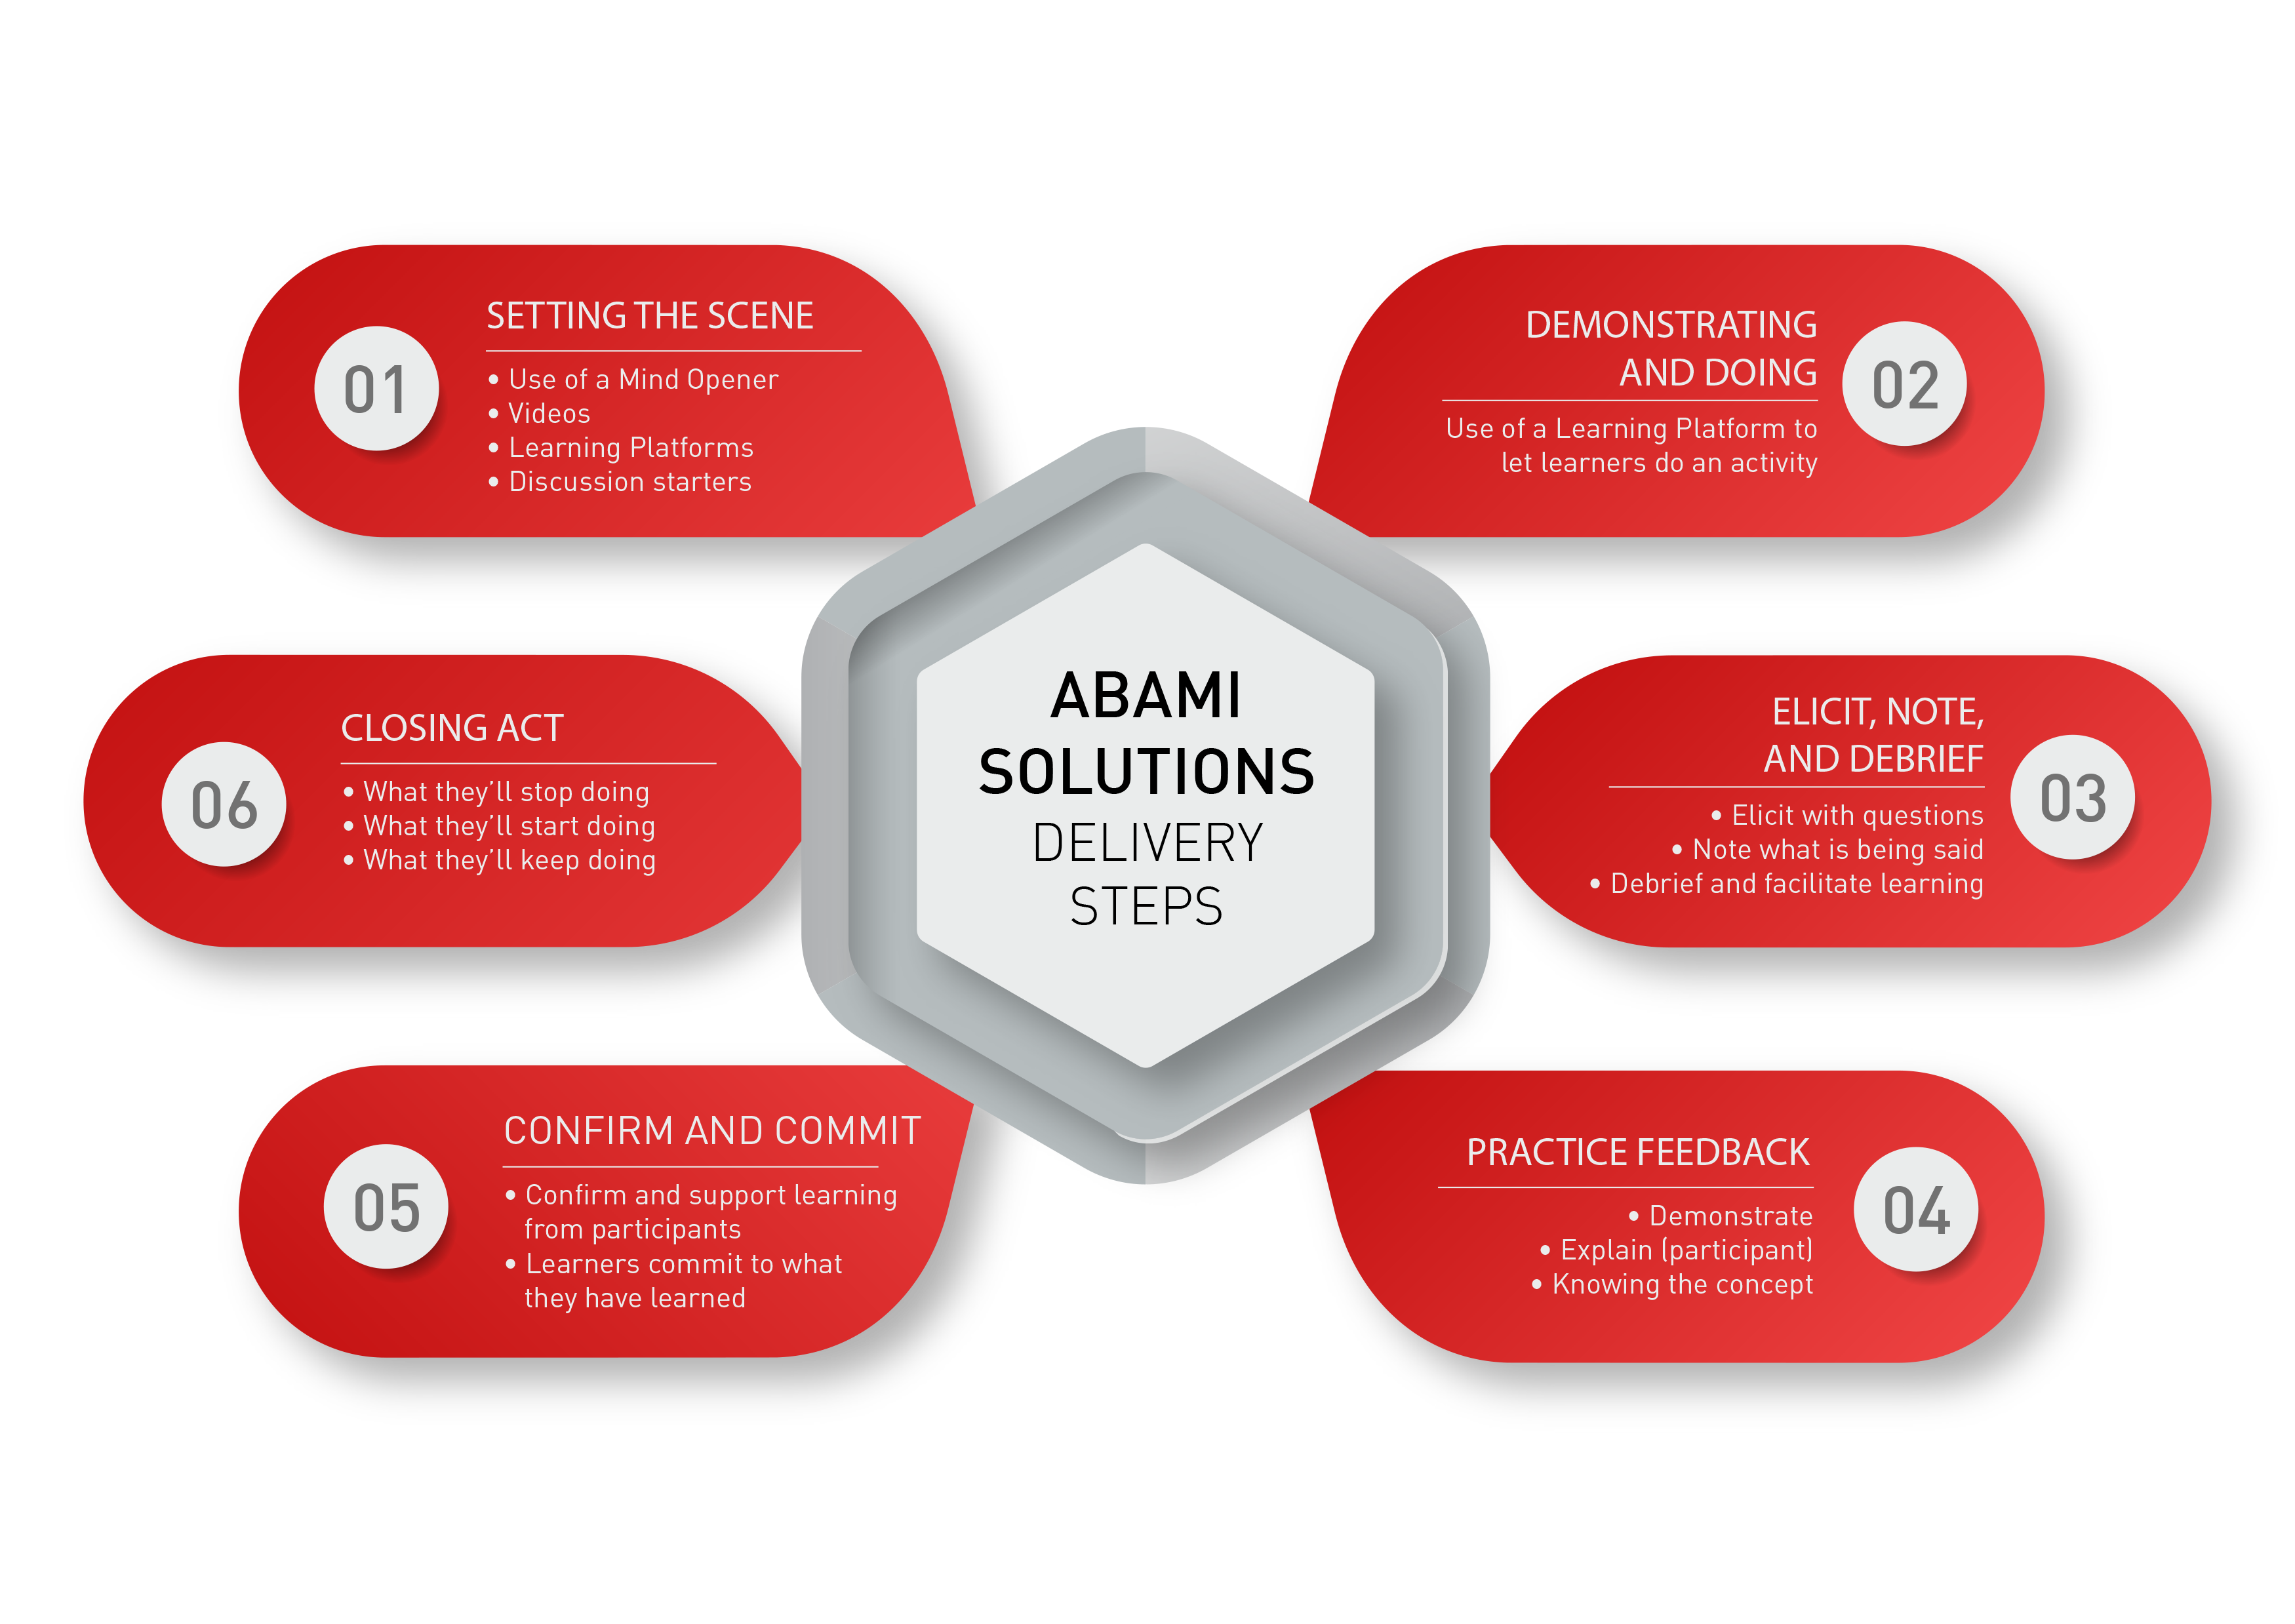 Abami Solutions Delivery Steps